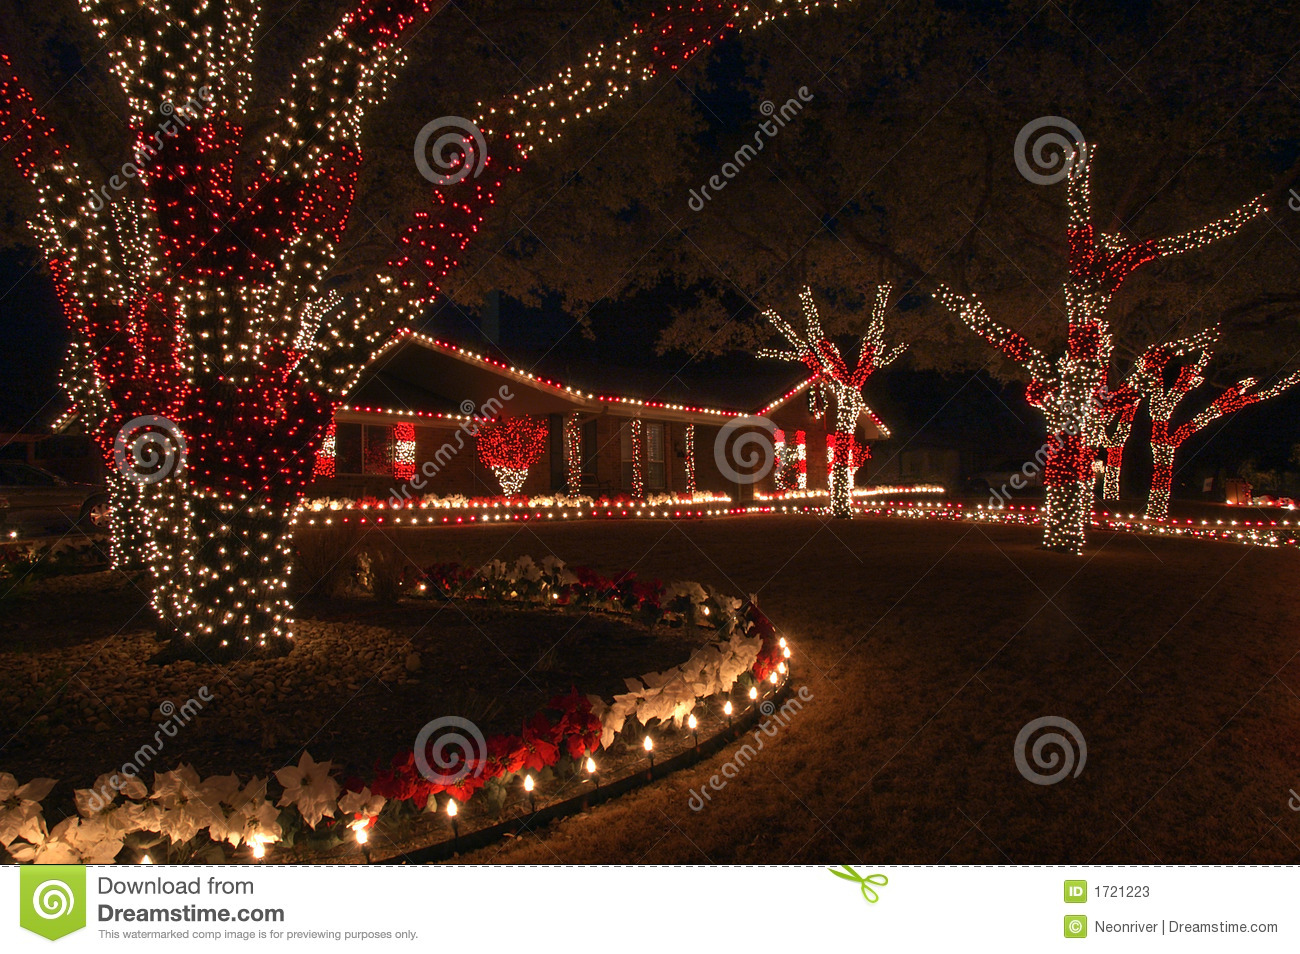 Red and white holiday lights is the color theme for this home and yard duyqyFuG